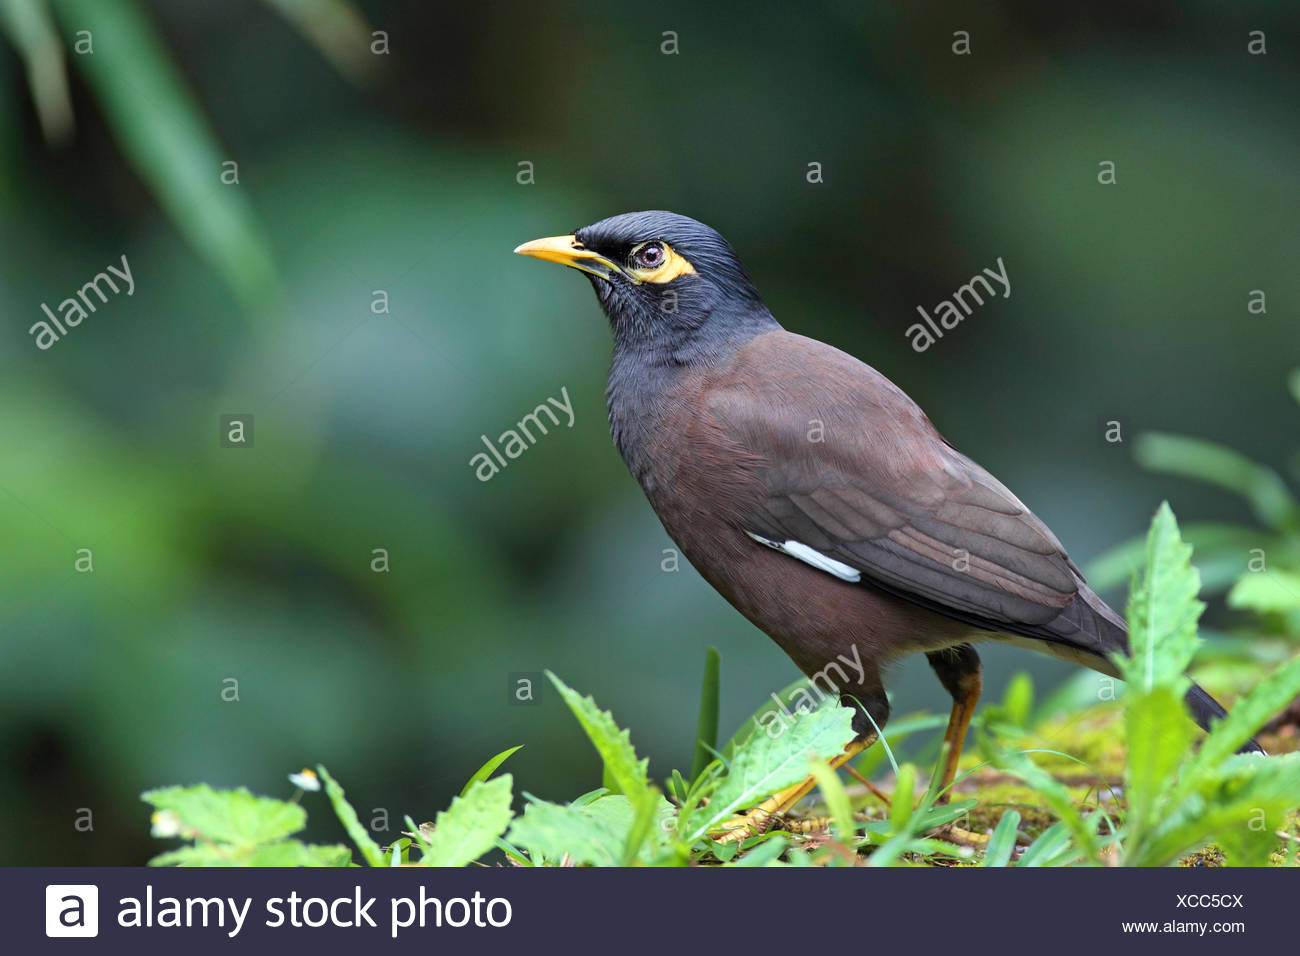 common mynah (Acridotheres tristis), stands on the ground, Seychelles, Mahe - Stock Image